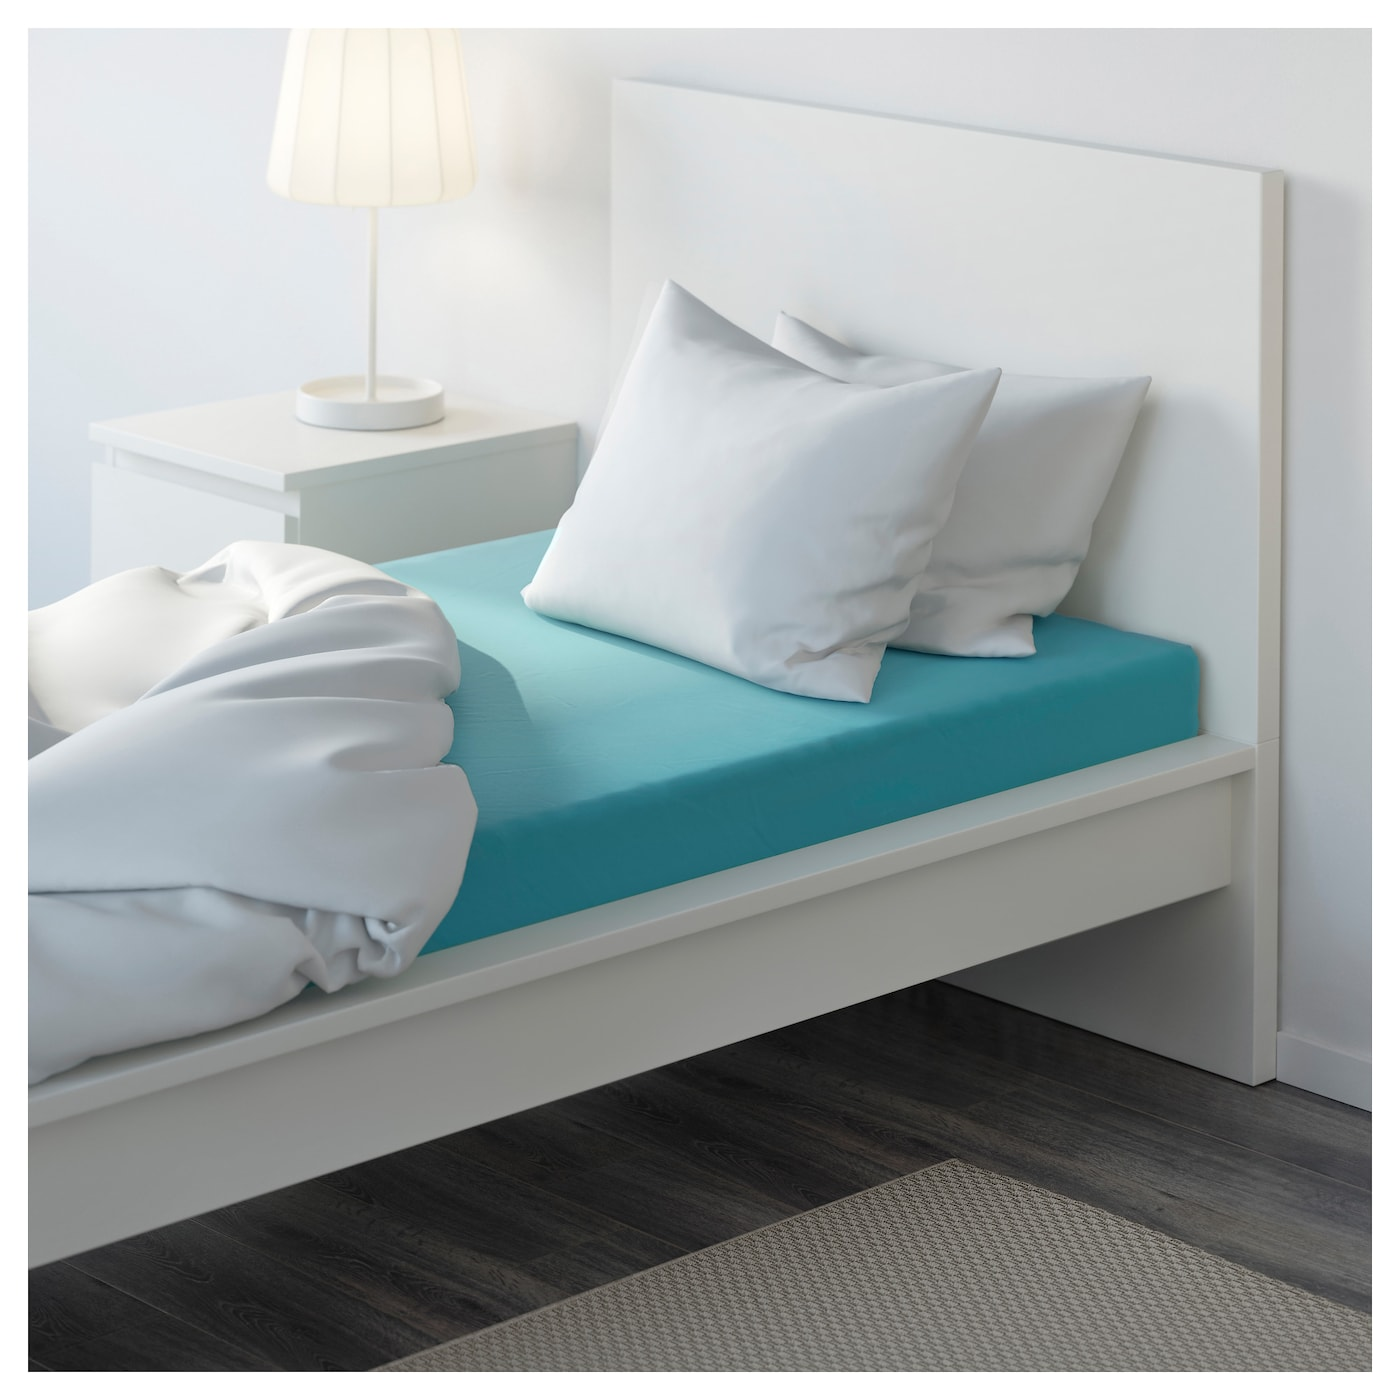 GÄSPA Fitted sheet Turquoise 90×200 cm  IKEA